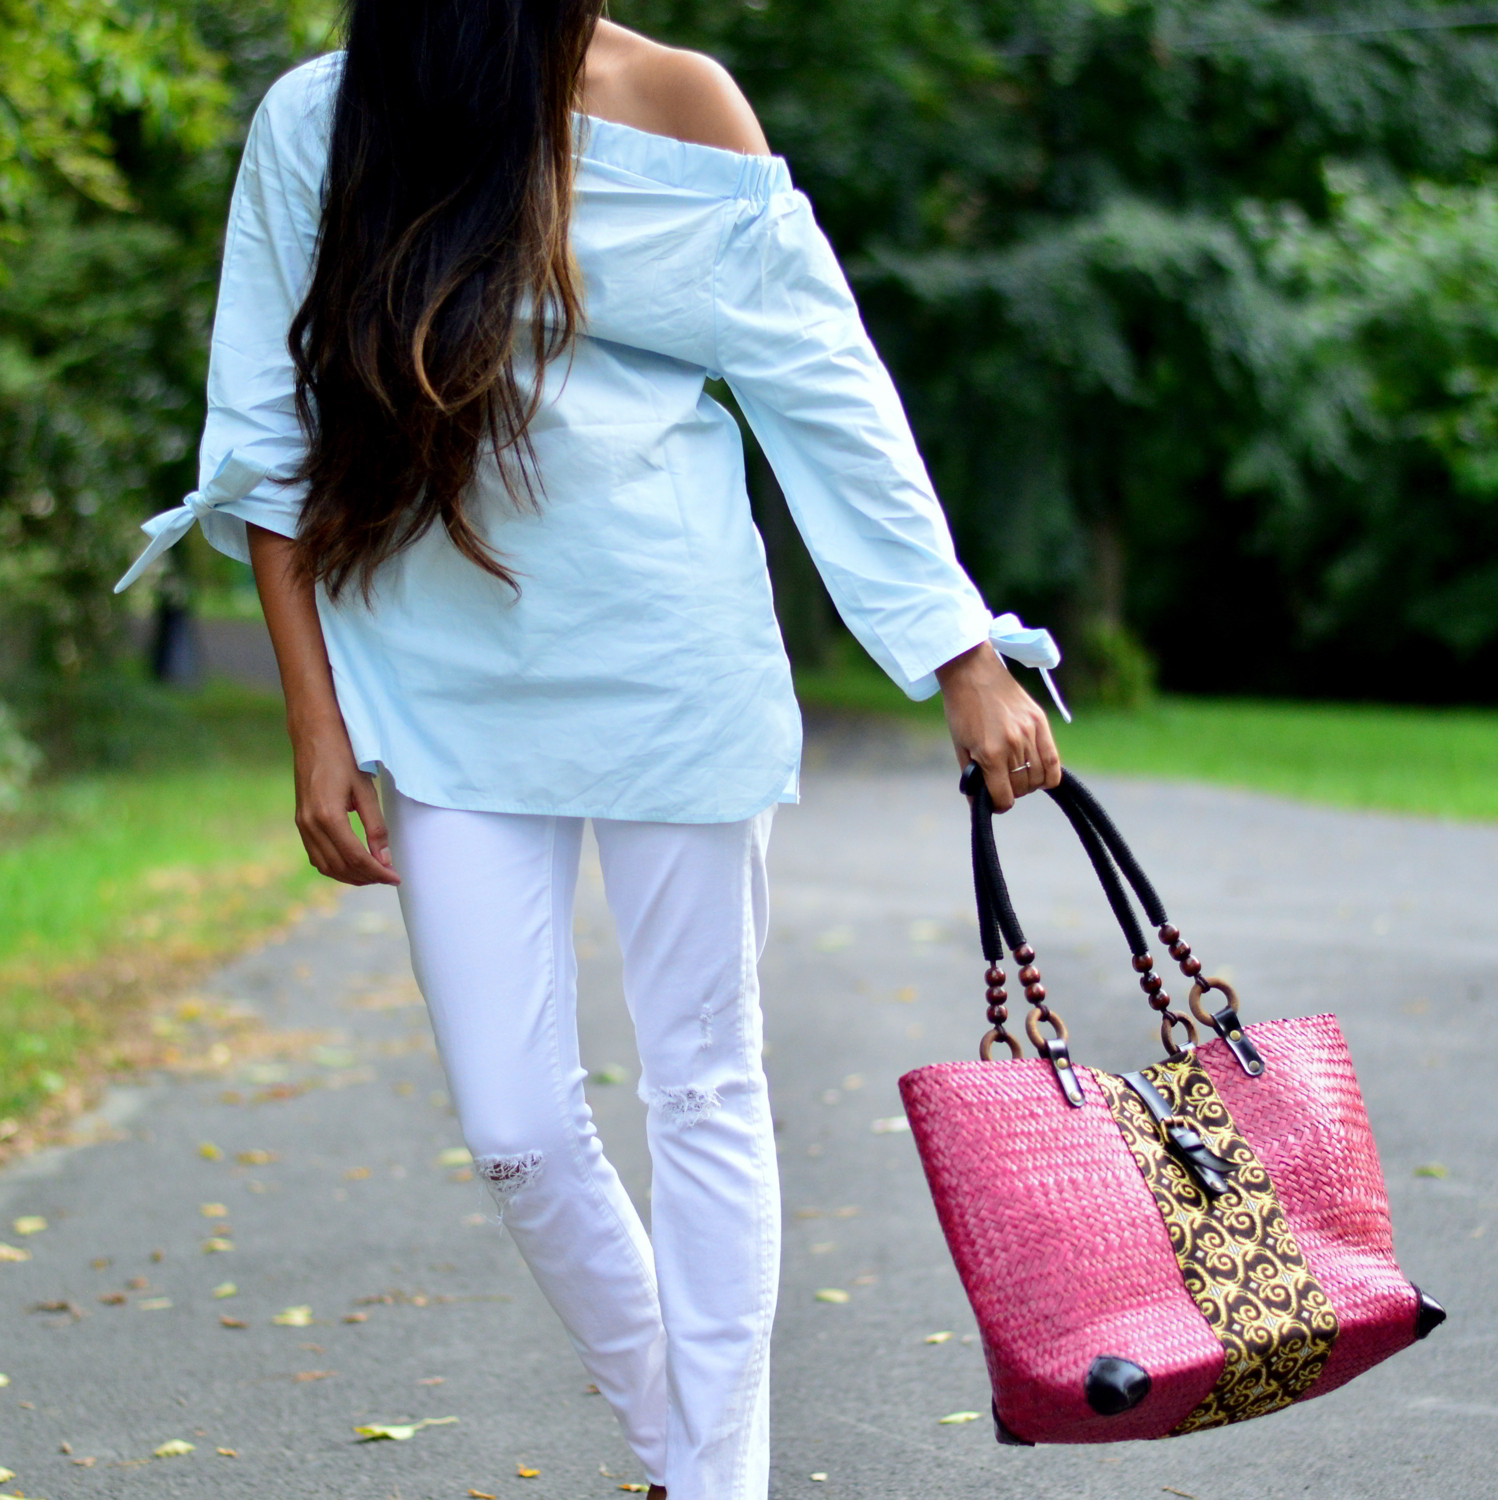 bows-sleeves-off-the-shoulder-chambray-frayed-hems-embellished-blogger-outfit 2